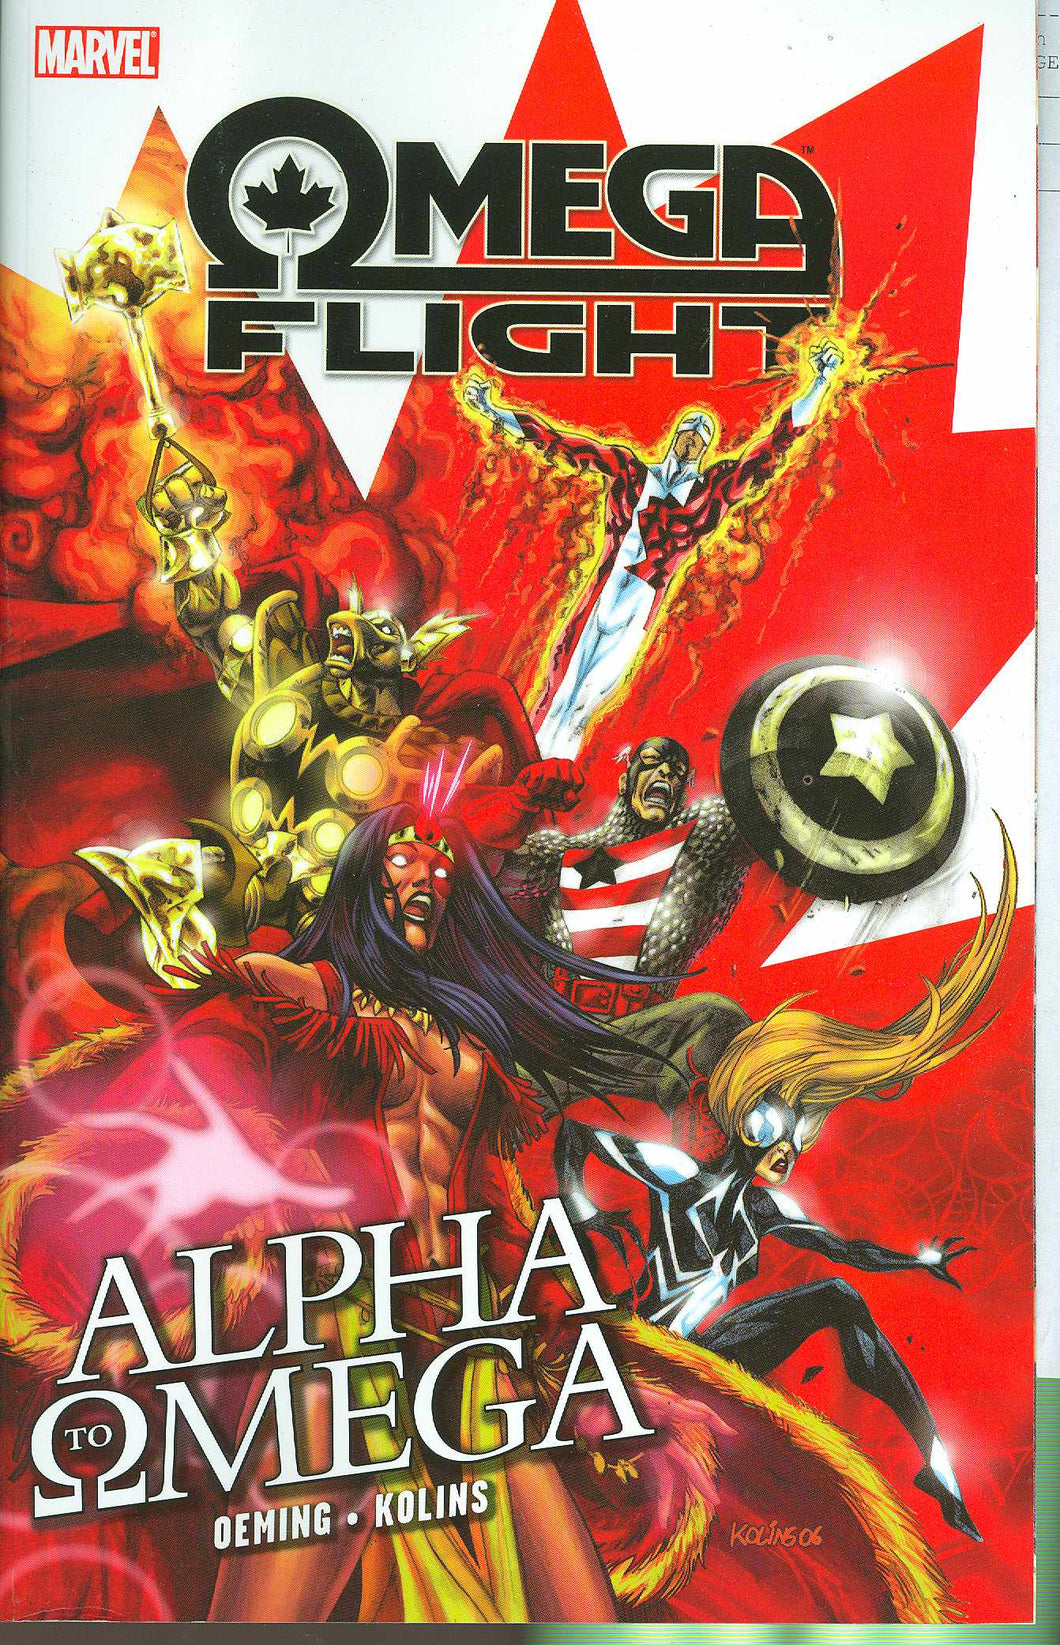 OMEGA FLIGHT #1-5 (2007 Marvel Comics) COMPLETE SET